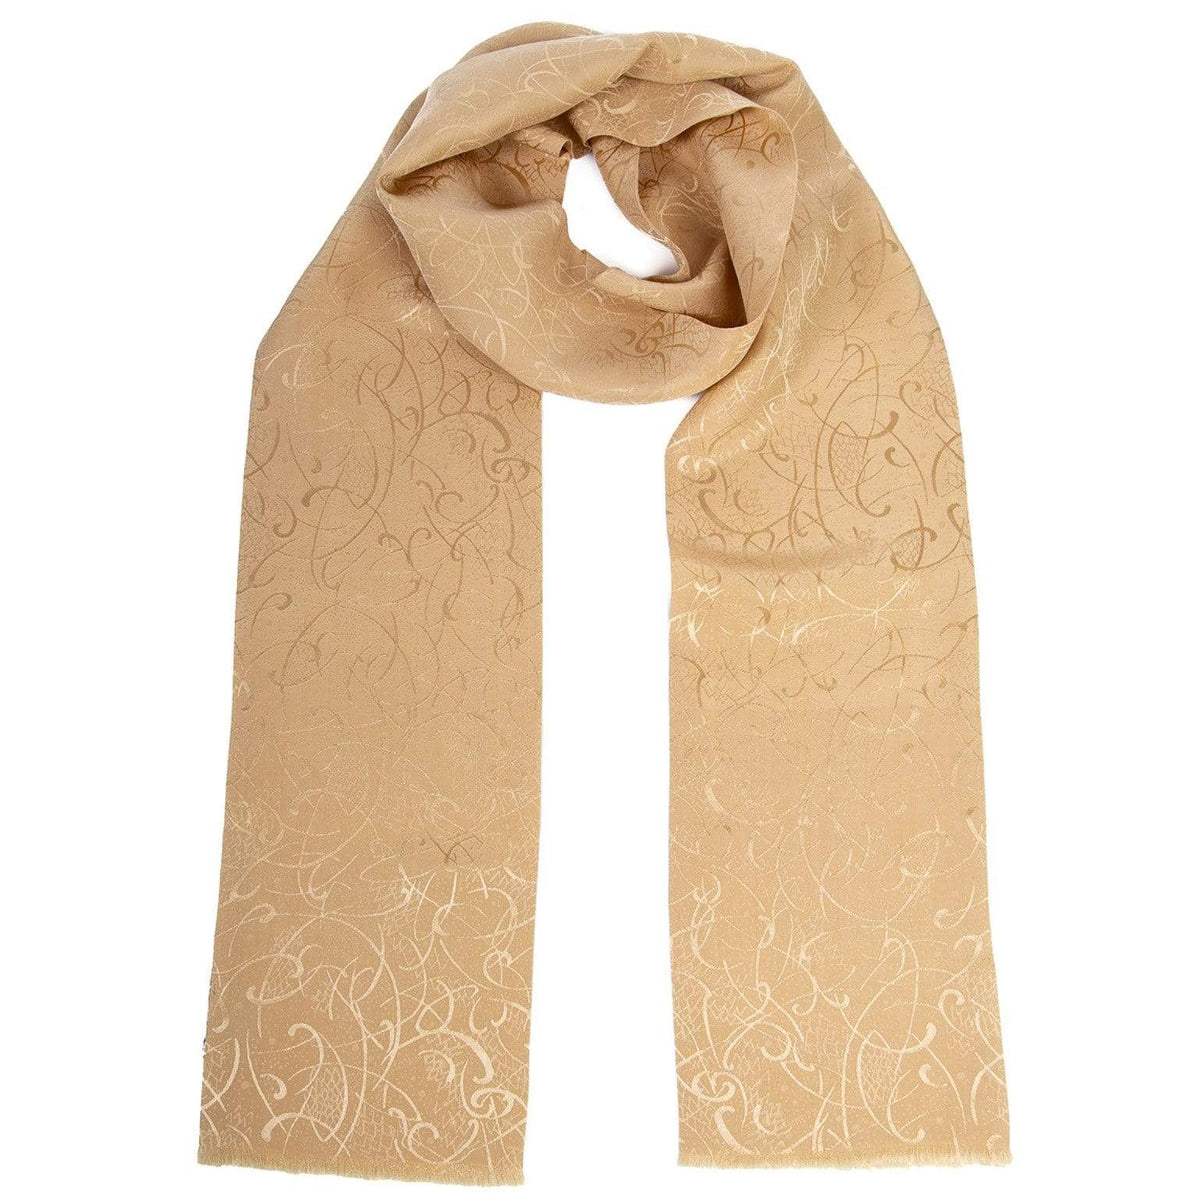 Mens Gold Silk Scarf - Formal Tuxedo - Made in Italy